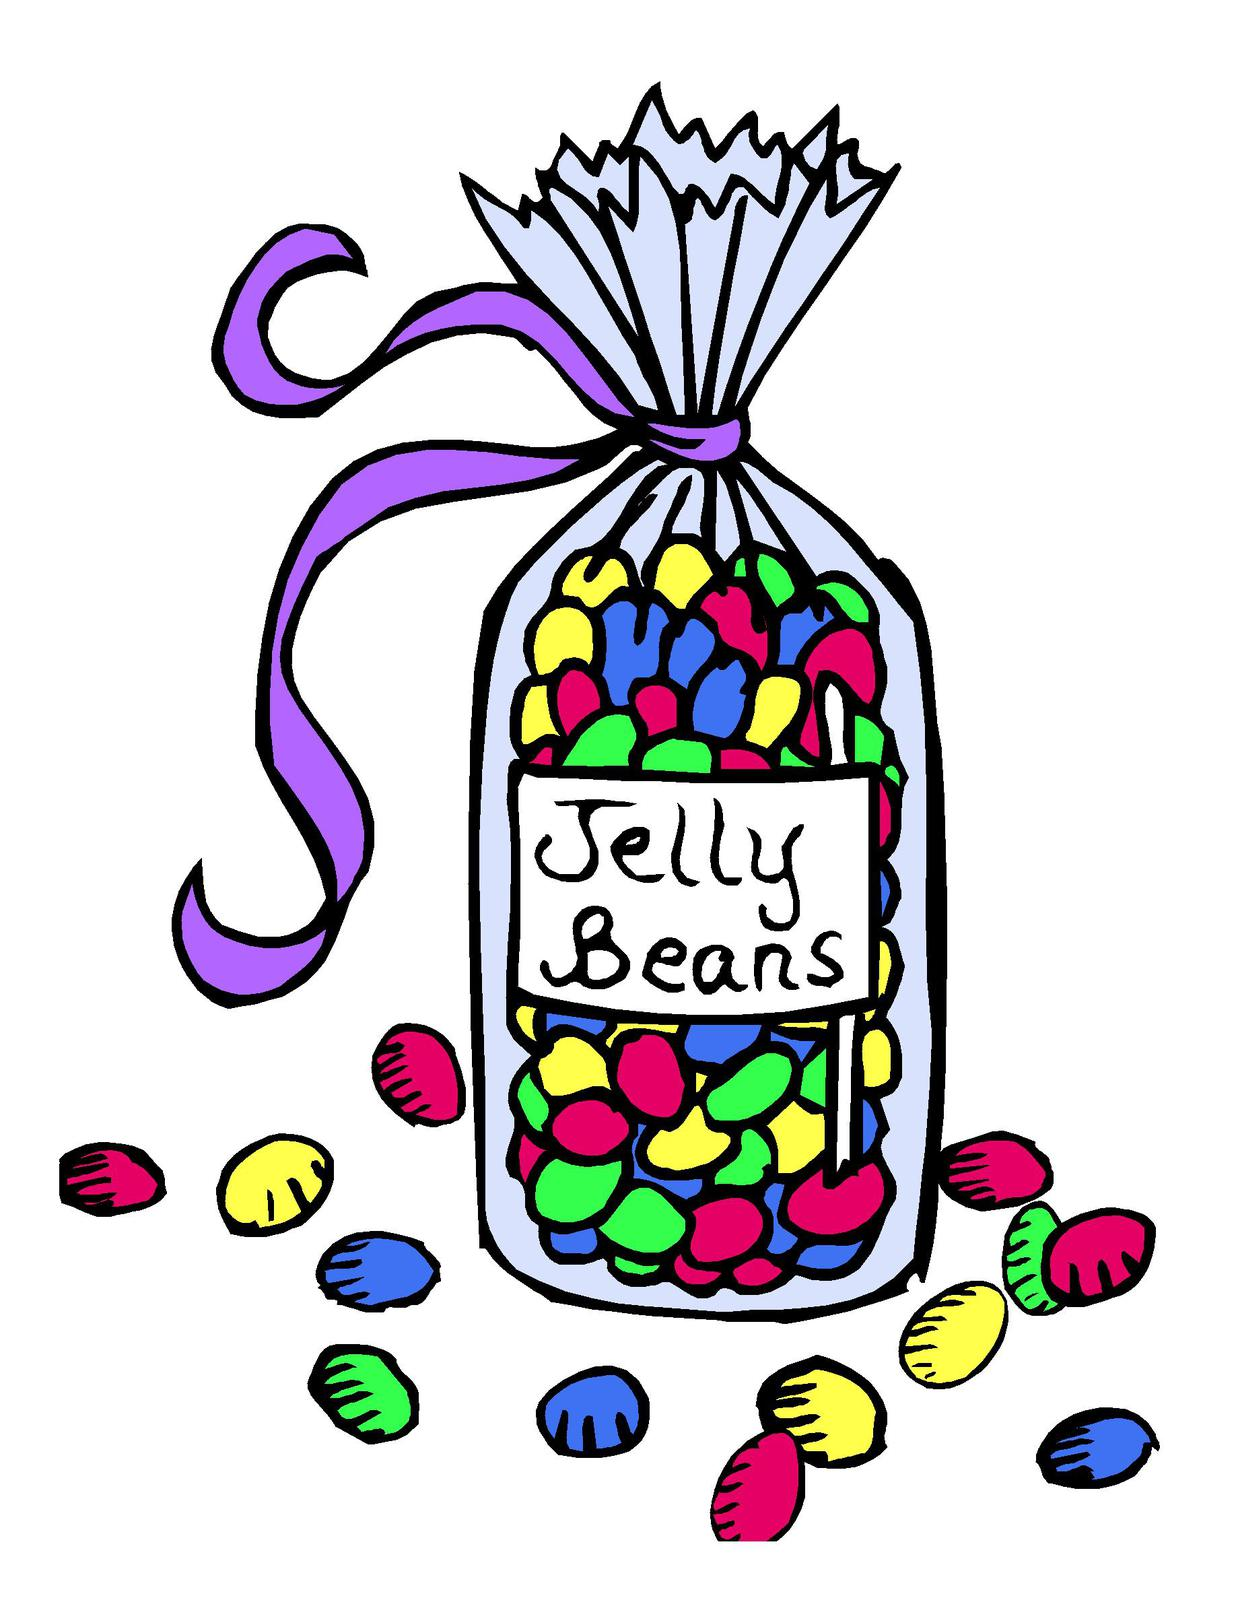 jelly beans jelly bean clip art free download clipart jelly beans